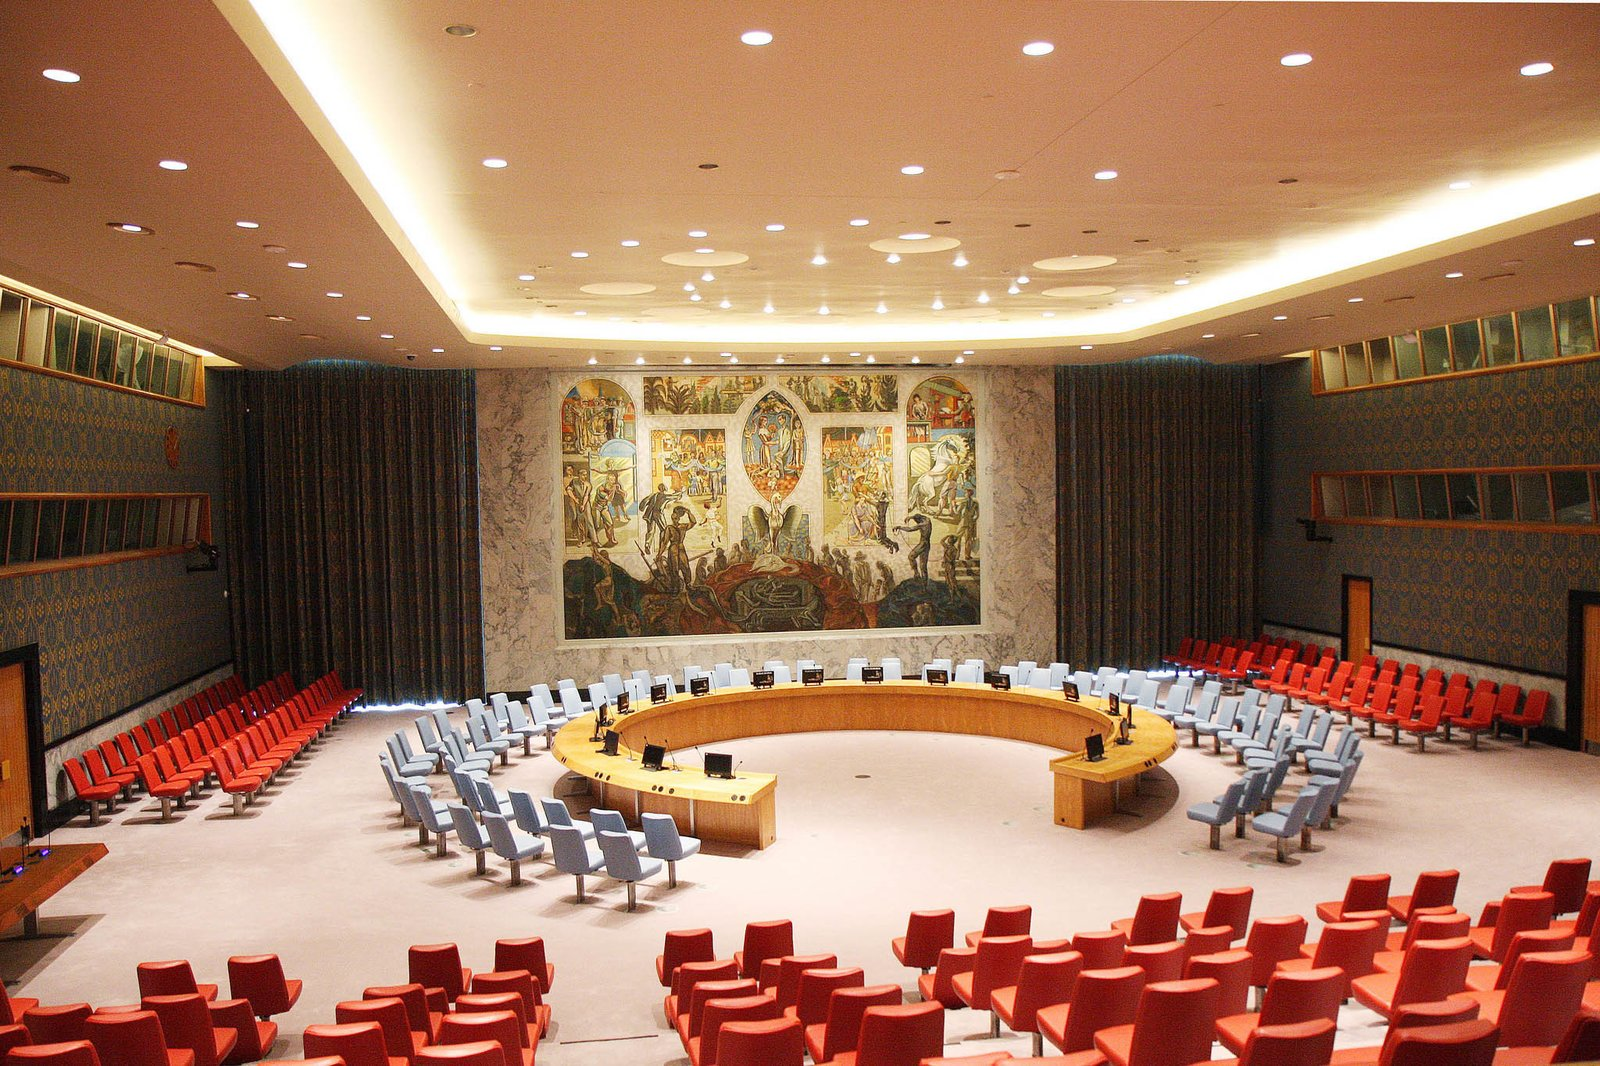 A Look Inside The United Nations Restored Security Council Chamber